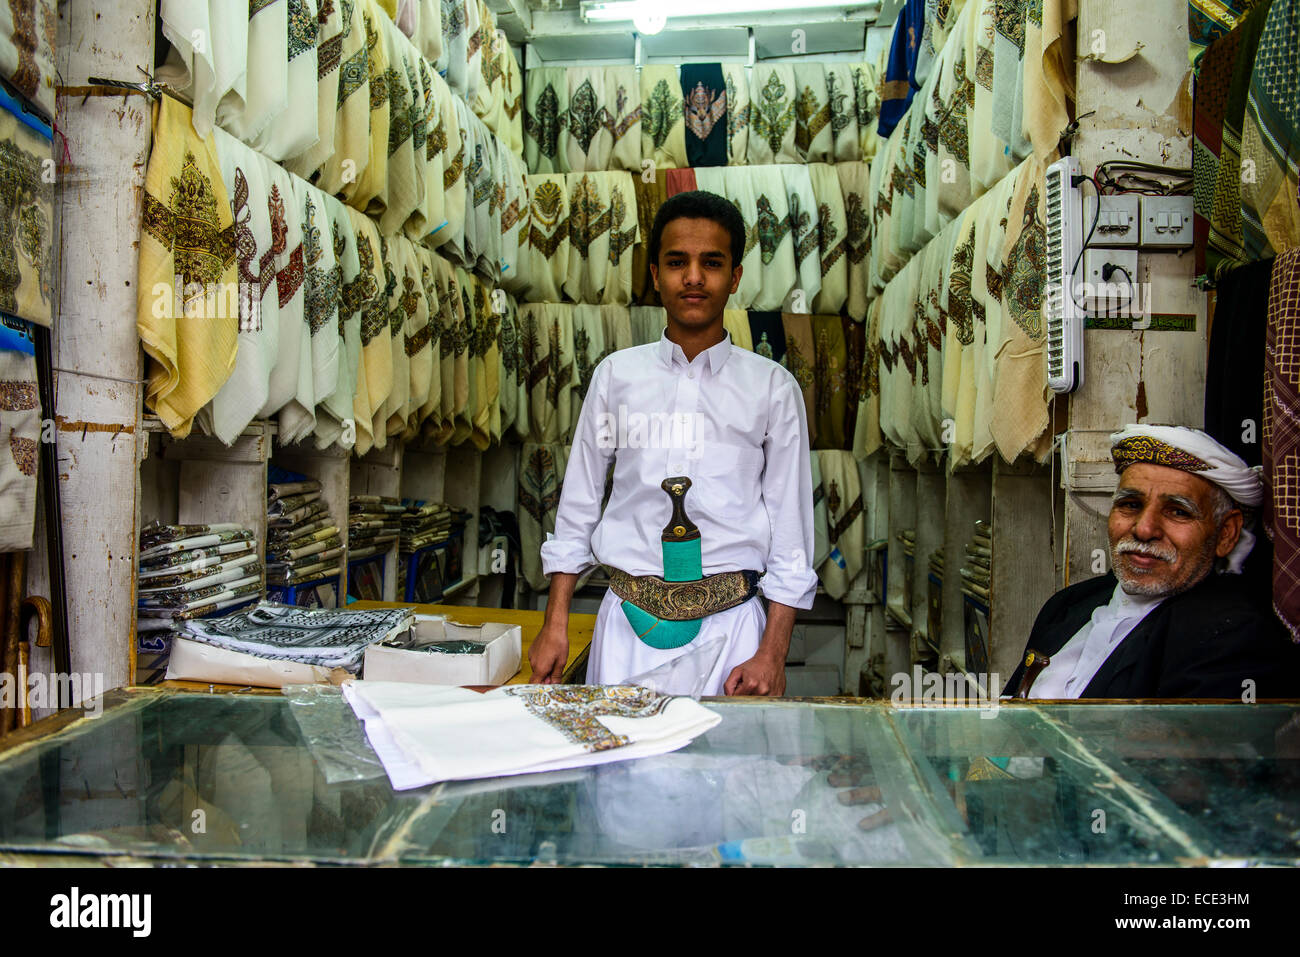 Men selling Kashmir clothes in the old city, Sana'a, Yemen - Stock Image